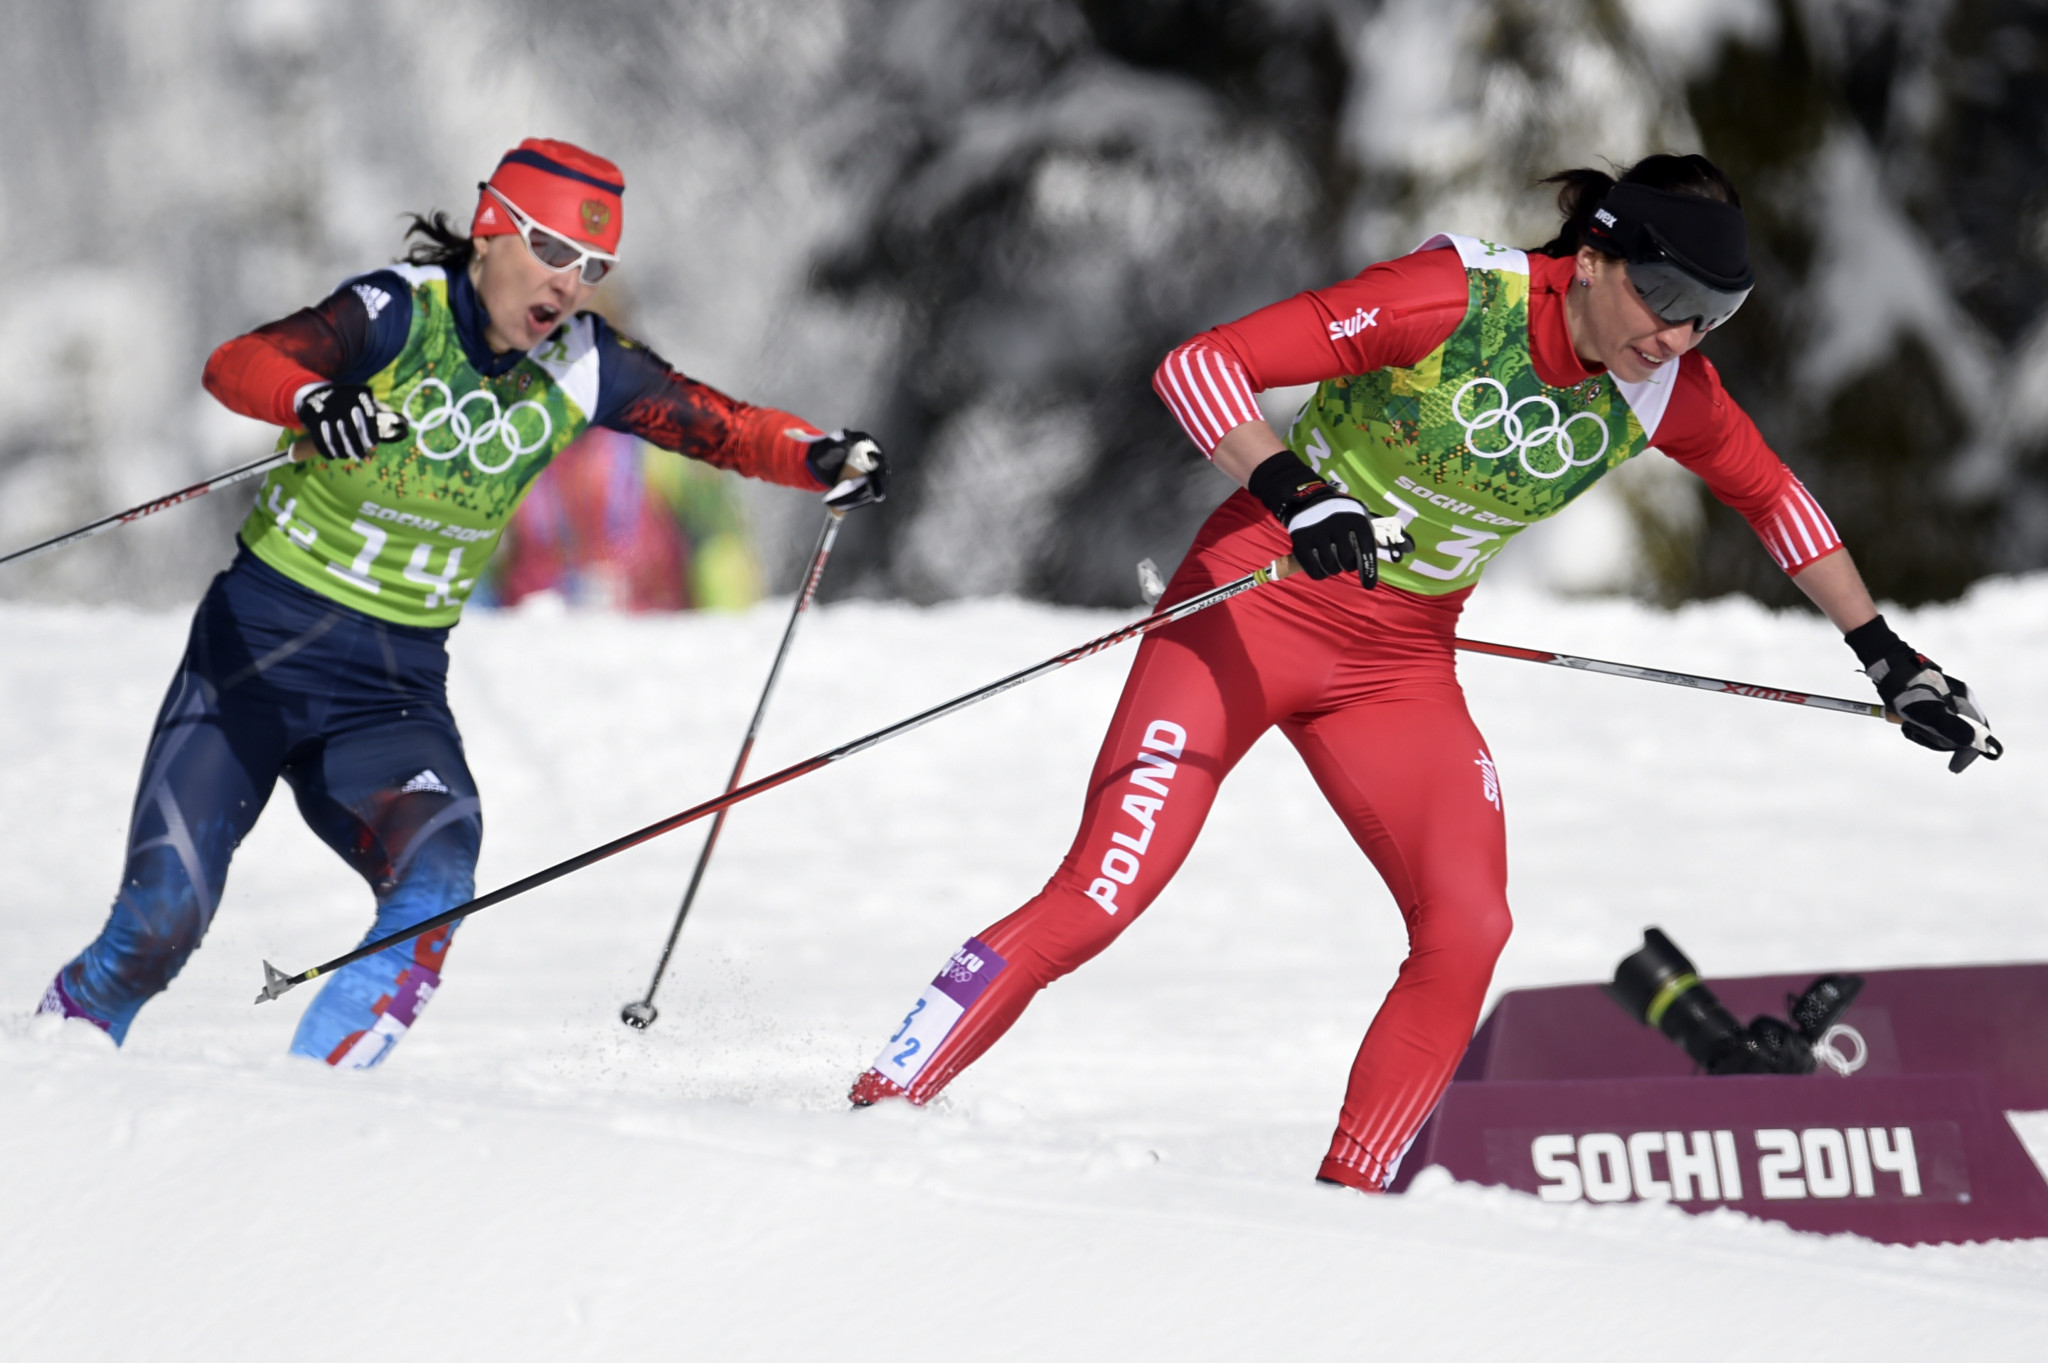 Four Russian skiers get life ban from Olympics over alleged doping use